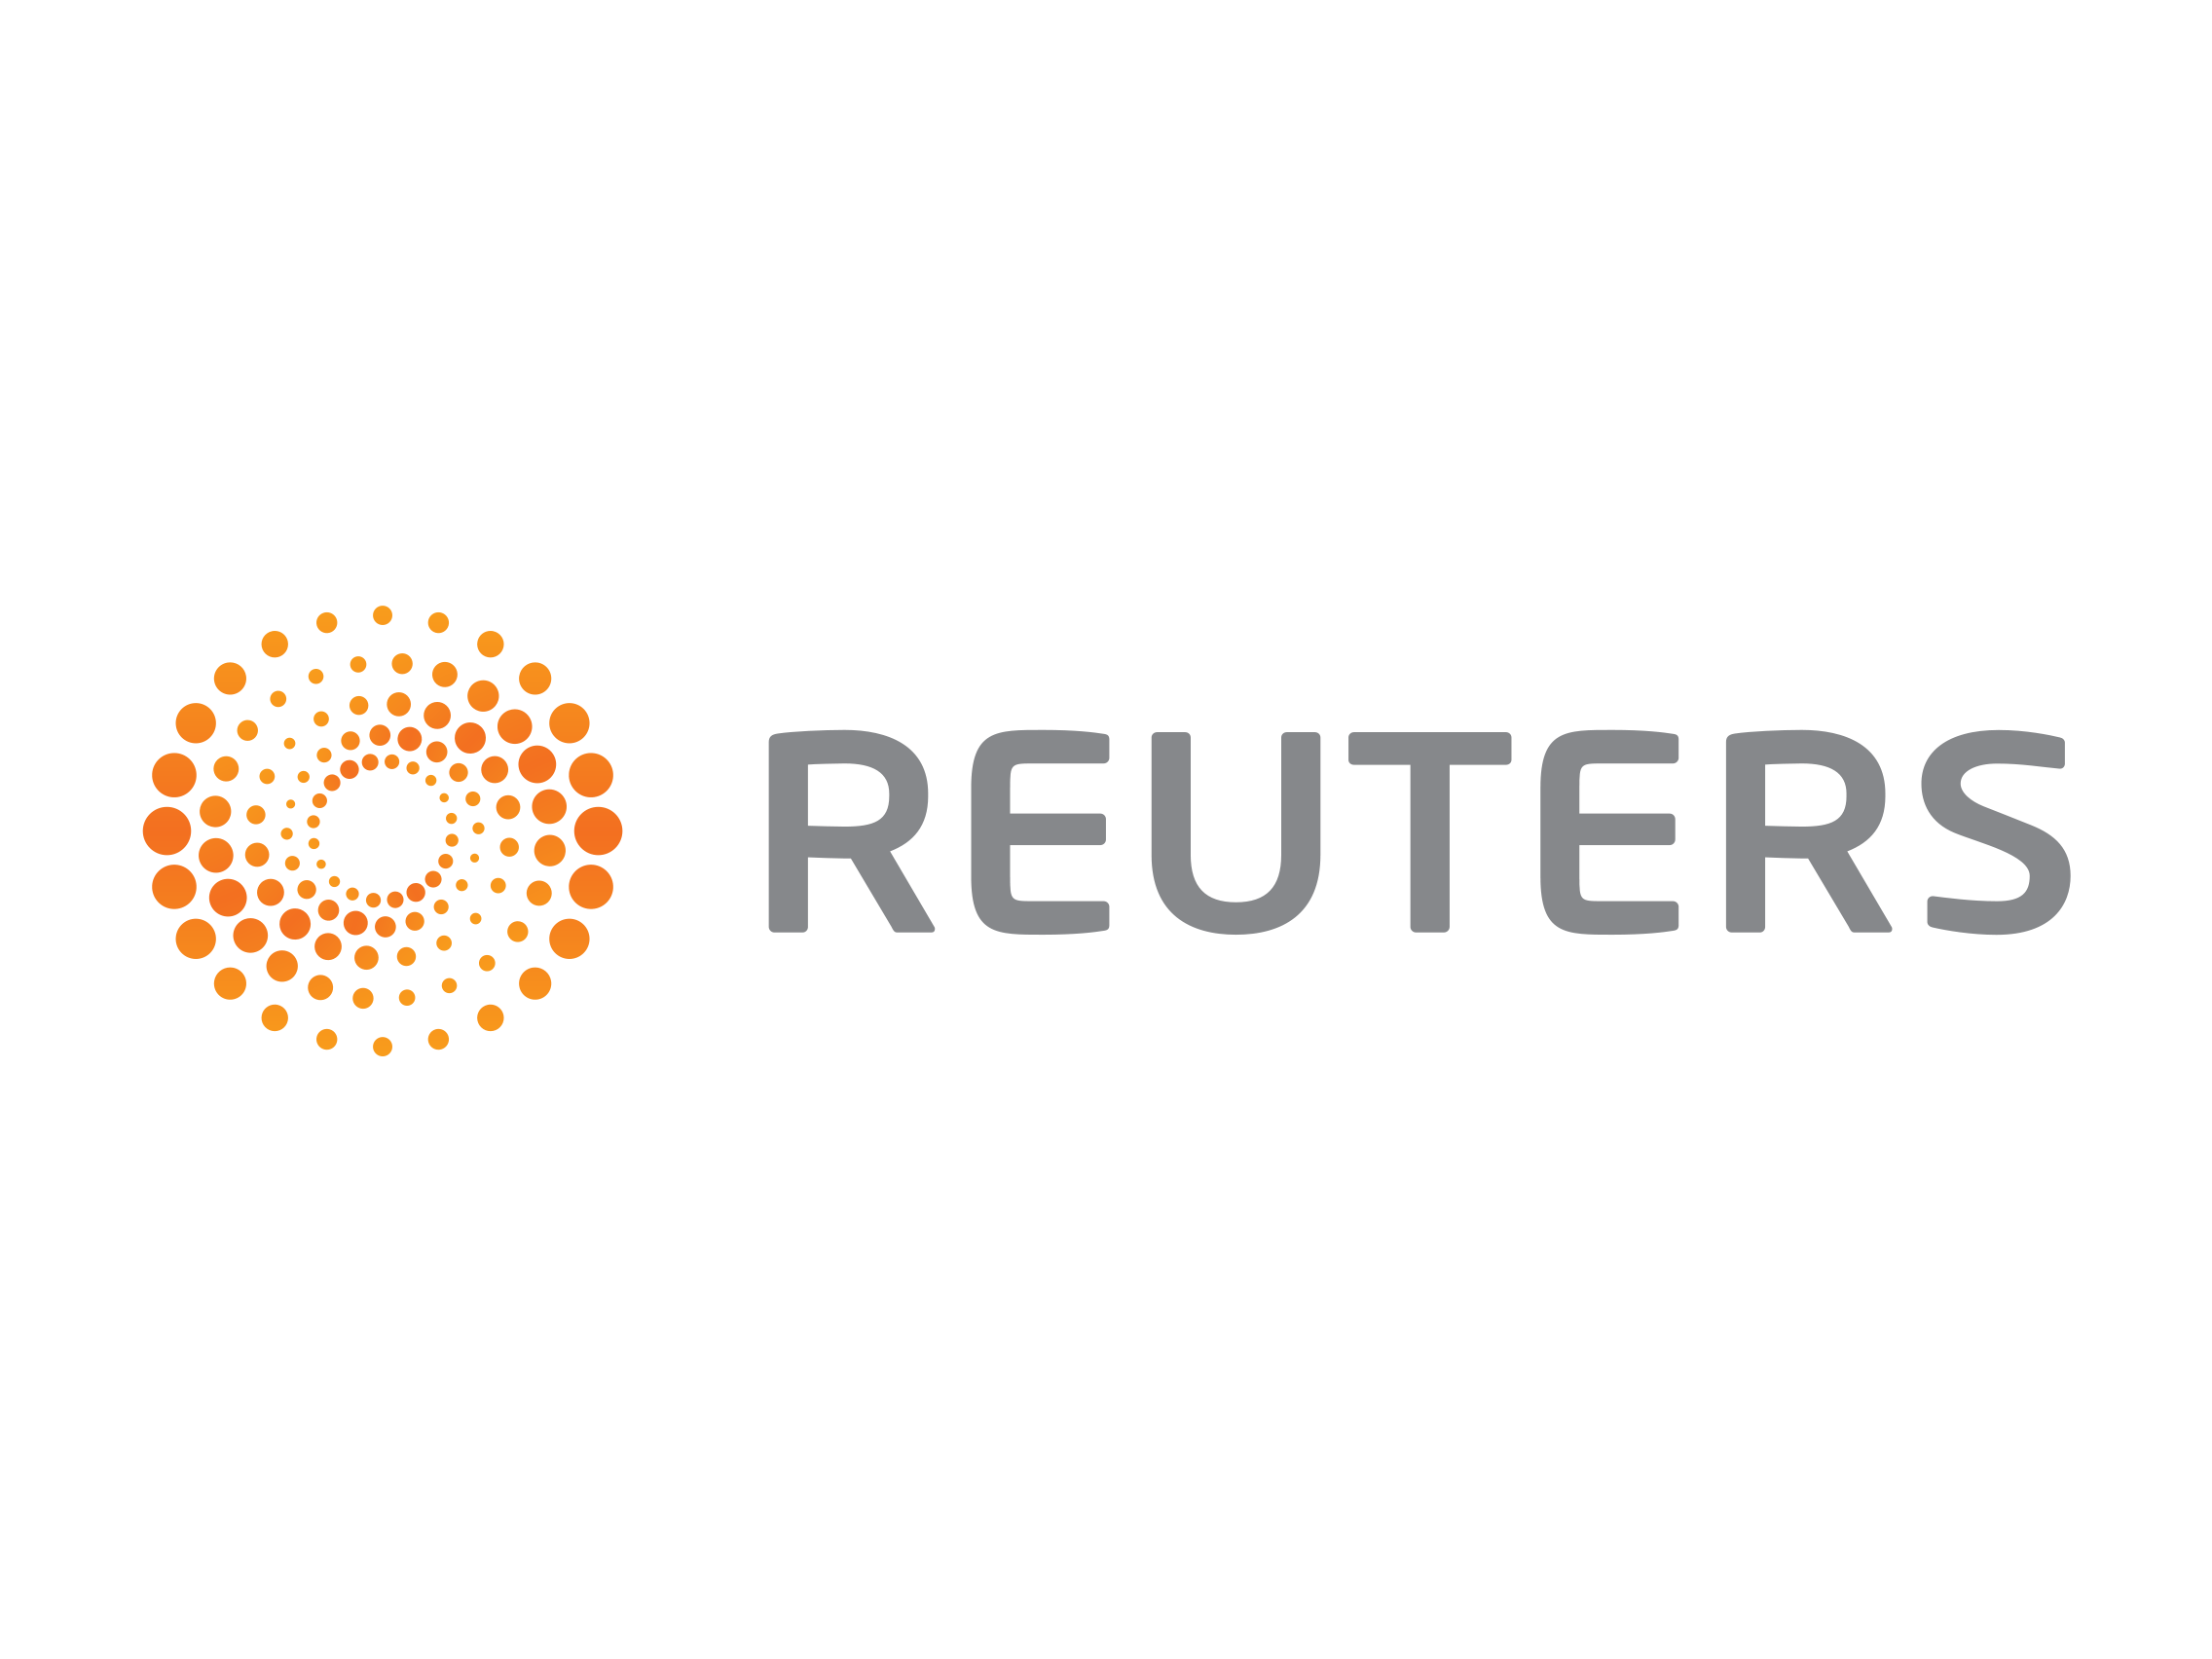 Reuters-logo self-directed IRs.png